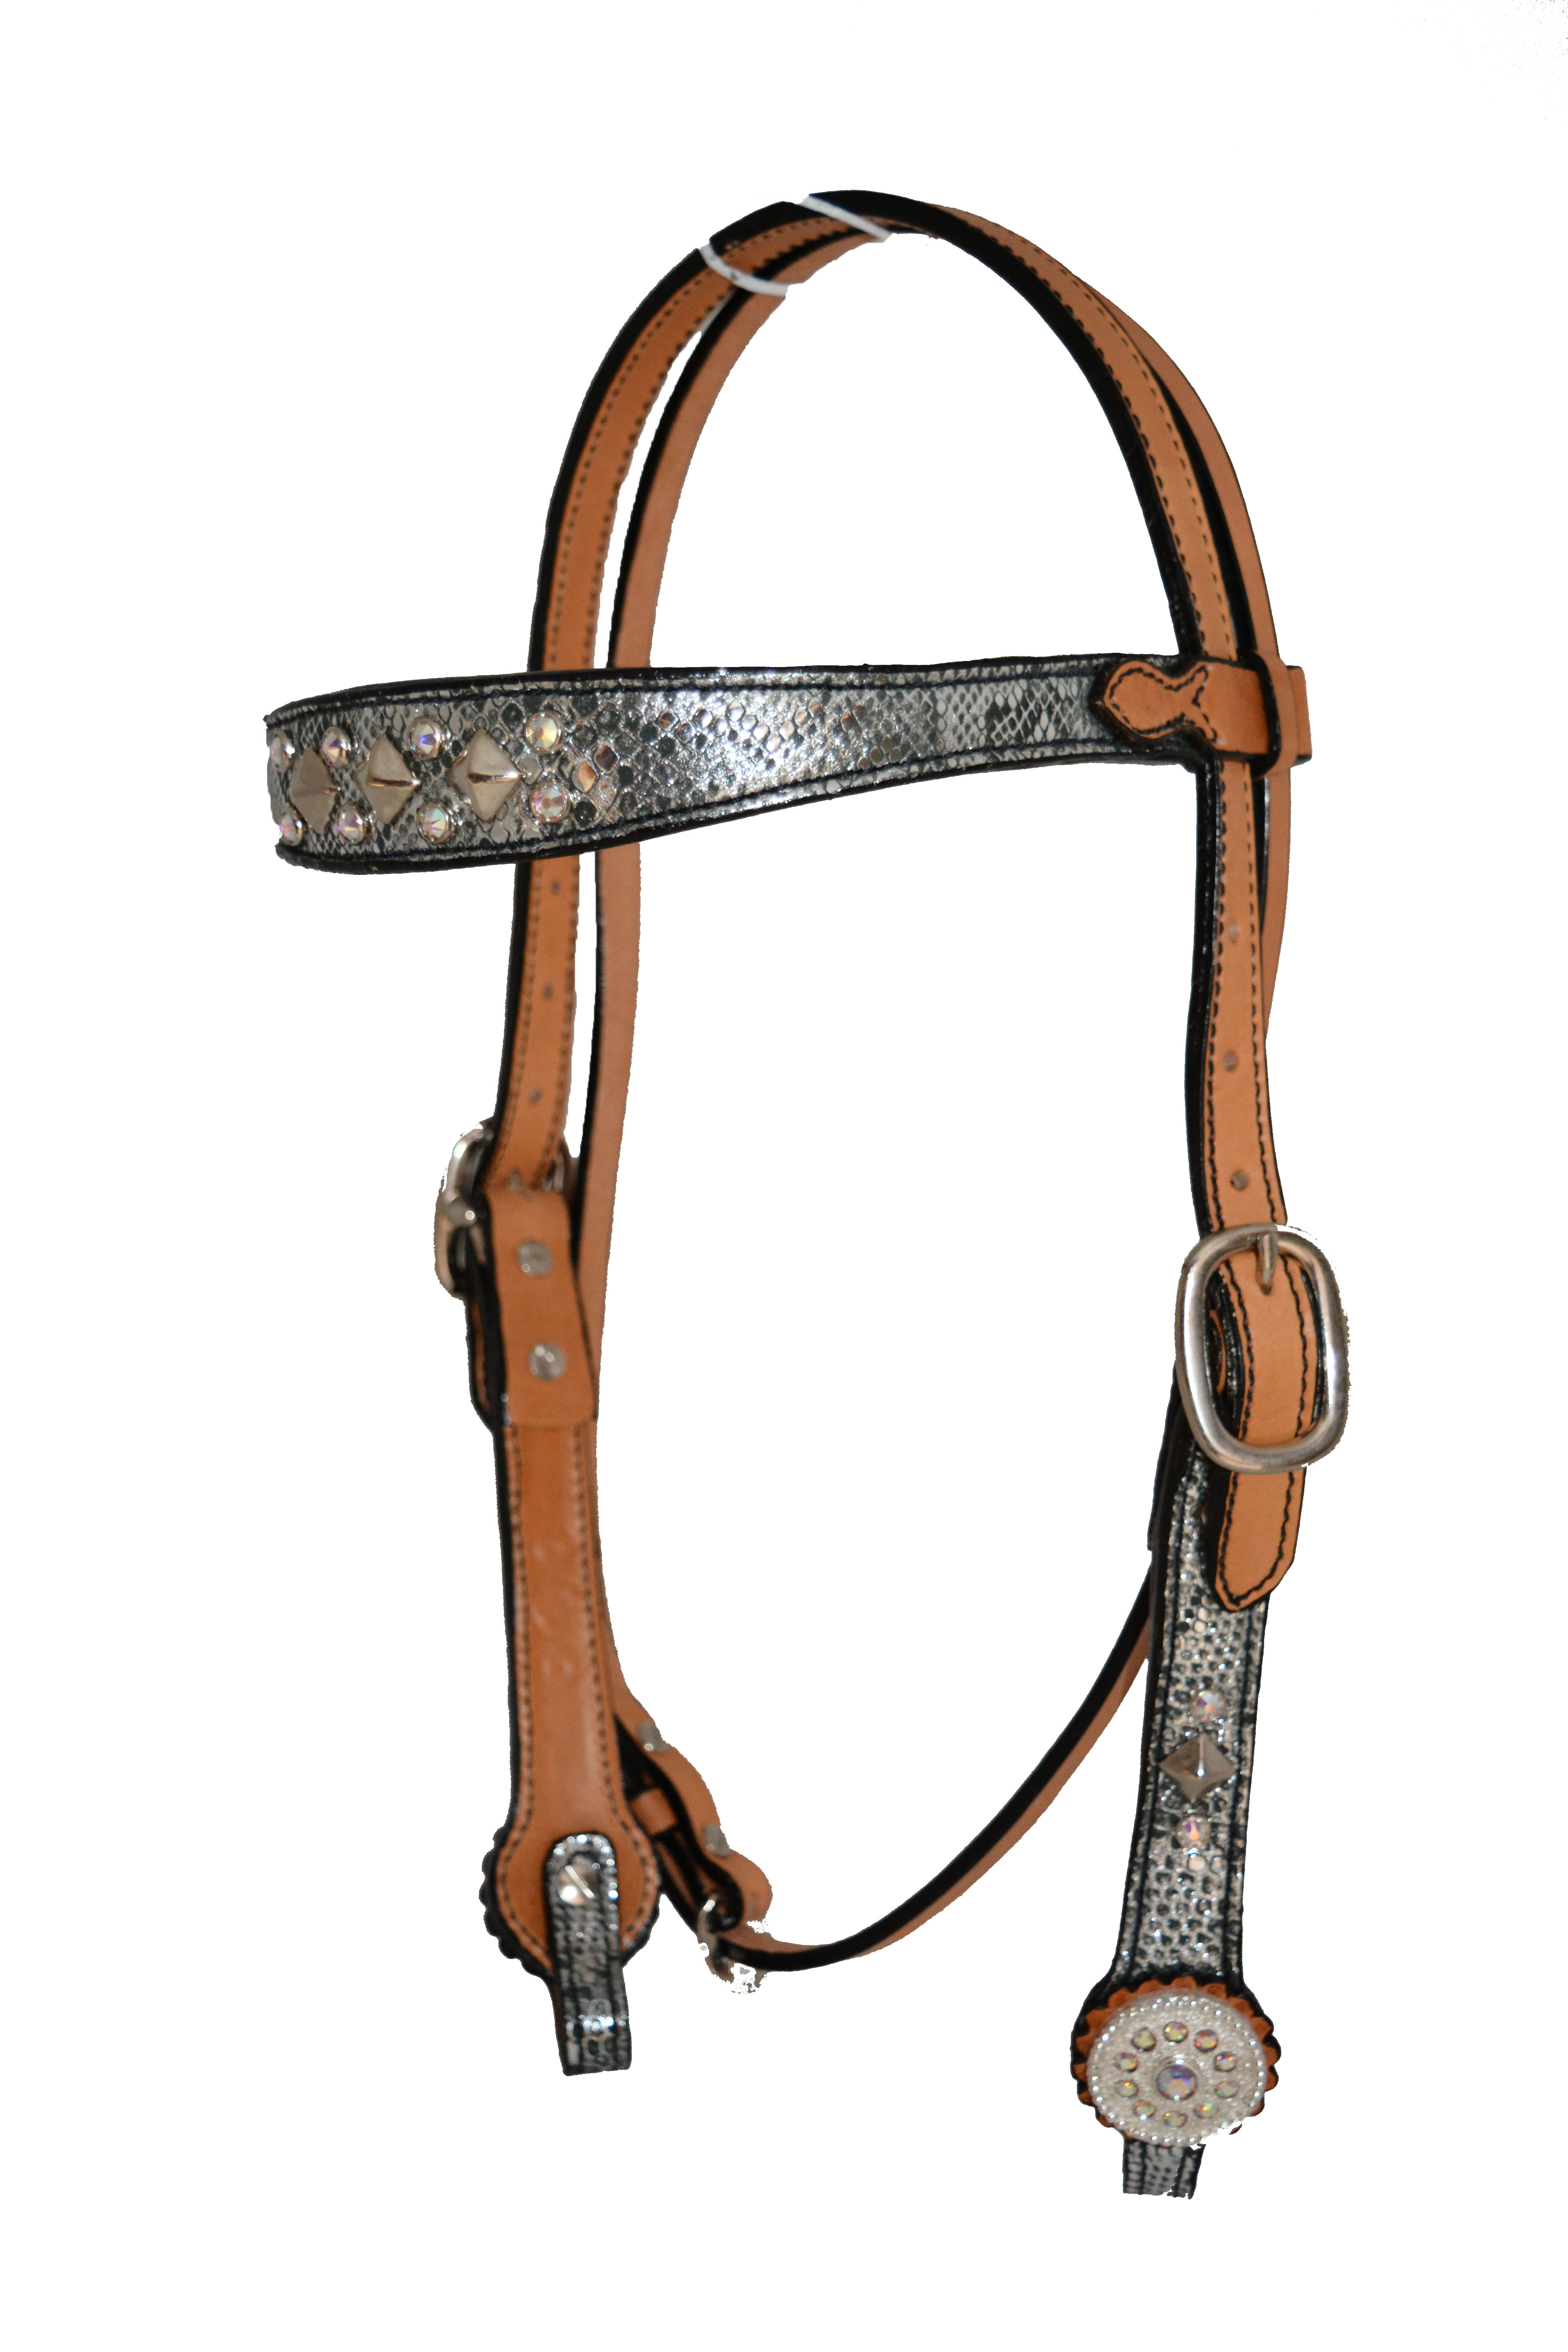 CONTOURED BROW HEADSTALL W SILVER PYTHON OVERLAY, SPOTS, CRYSTALS & CONCHOS (PZM)